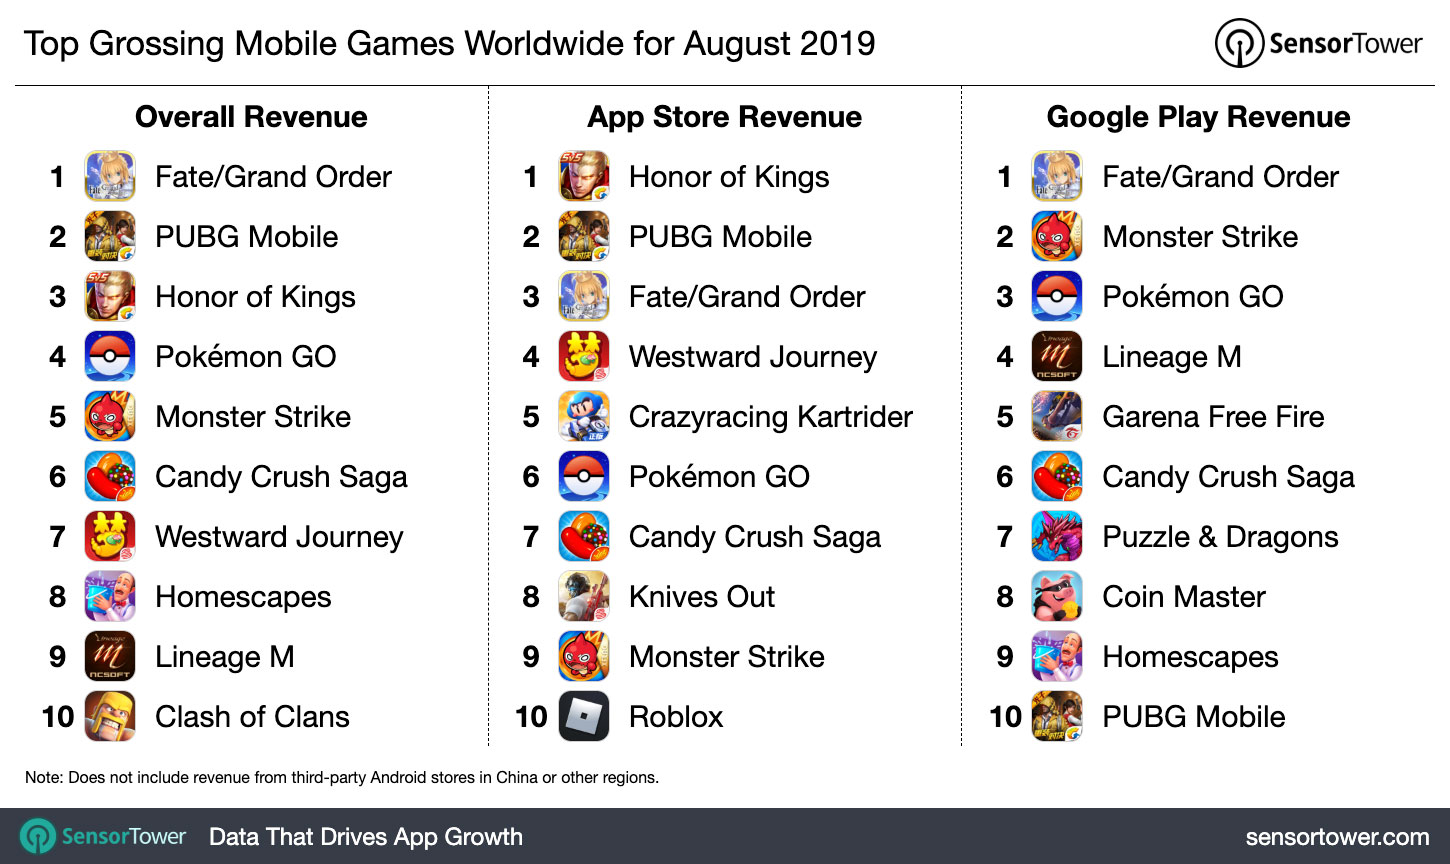 Top Grossing Mobile Games Worldwide For August 2019 Internet - toon blast strategy to top leaderboard free roblox items 2019